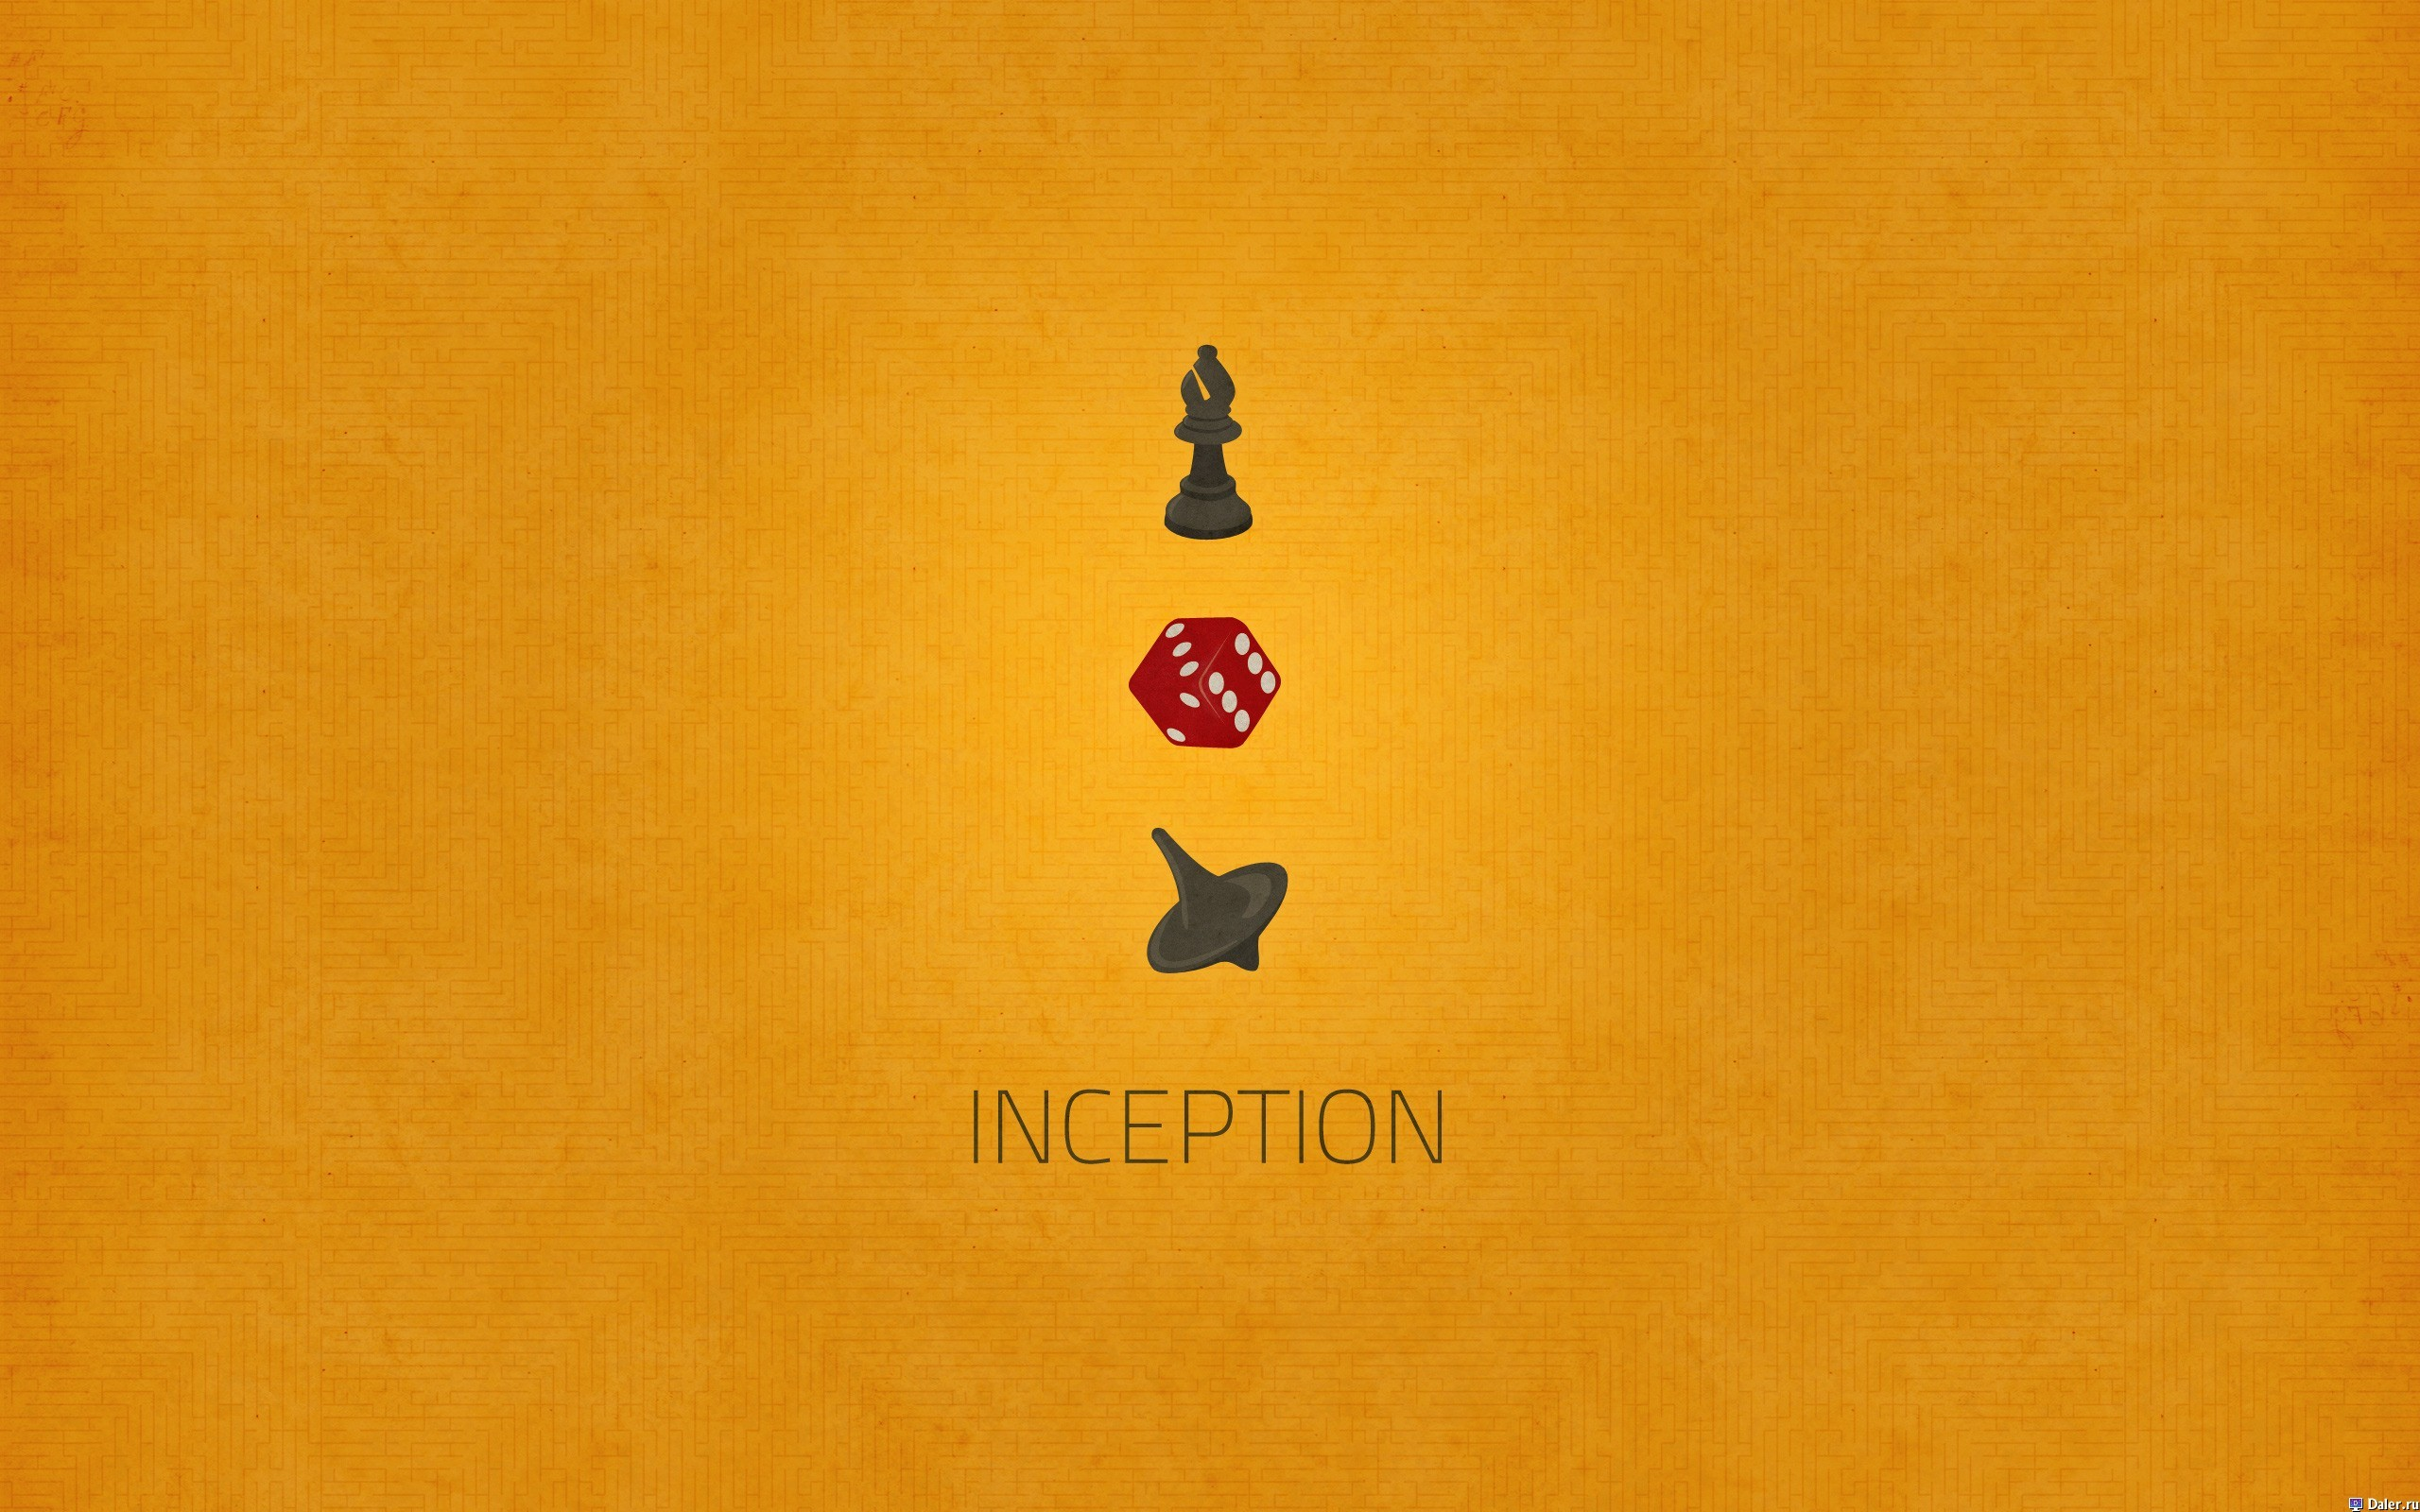 inception full hd wallpaper and background image | 2560x1600 | id:238992